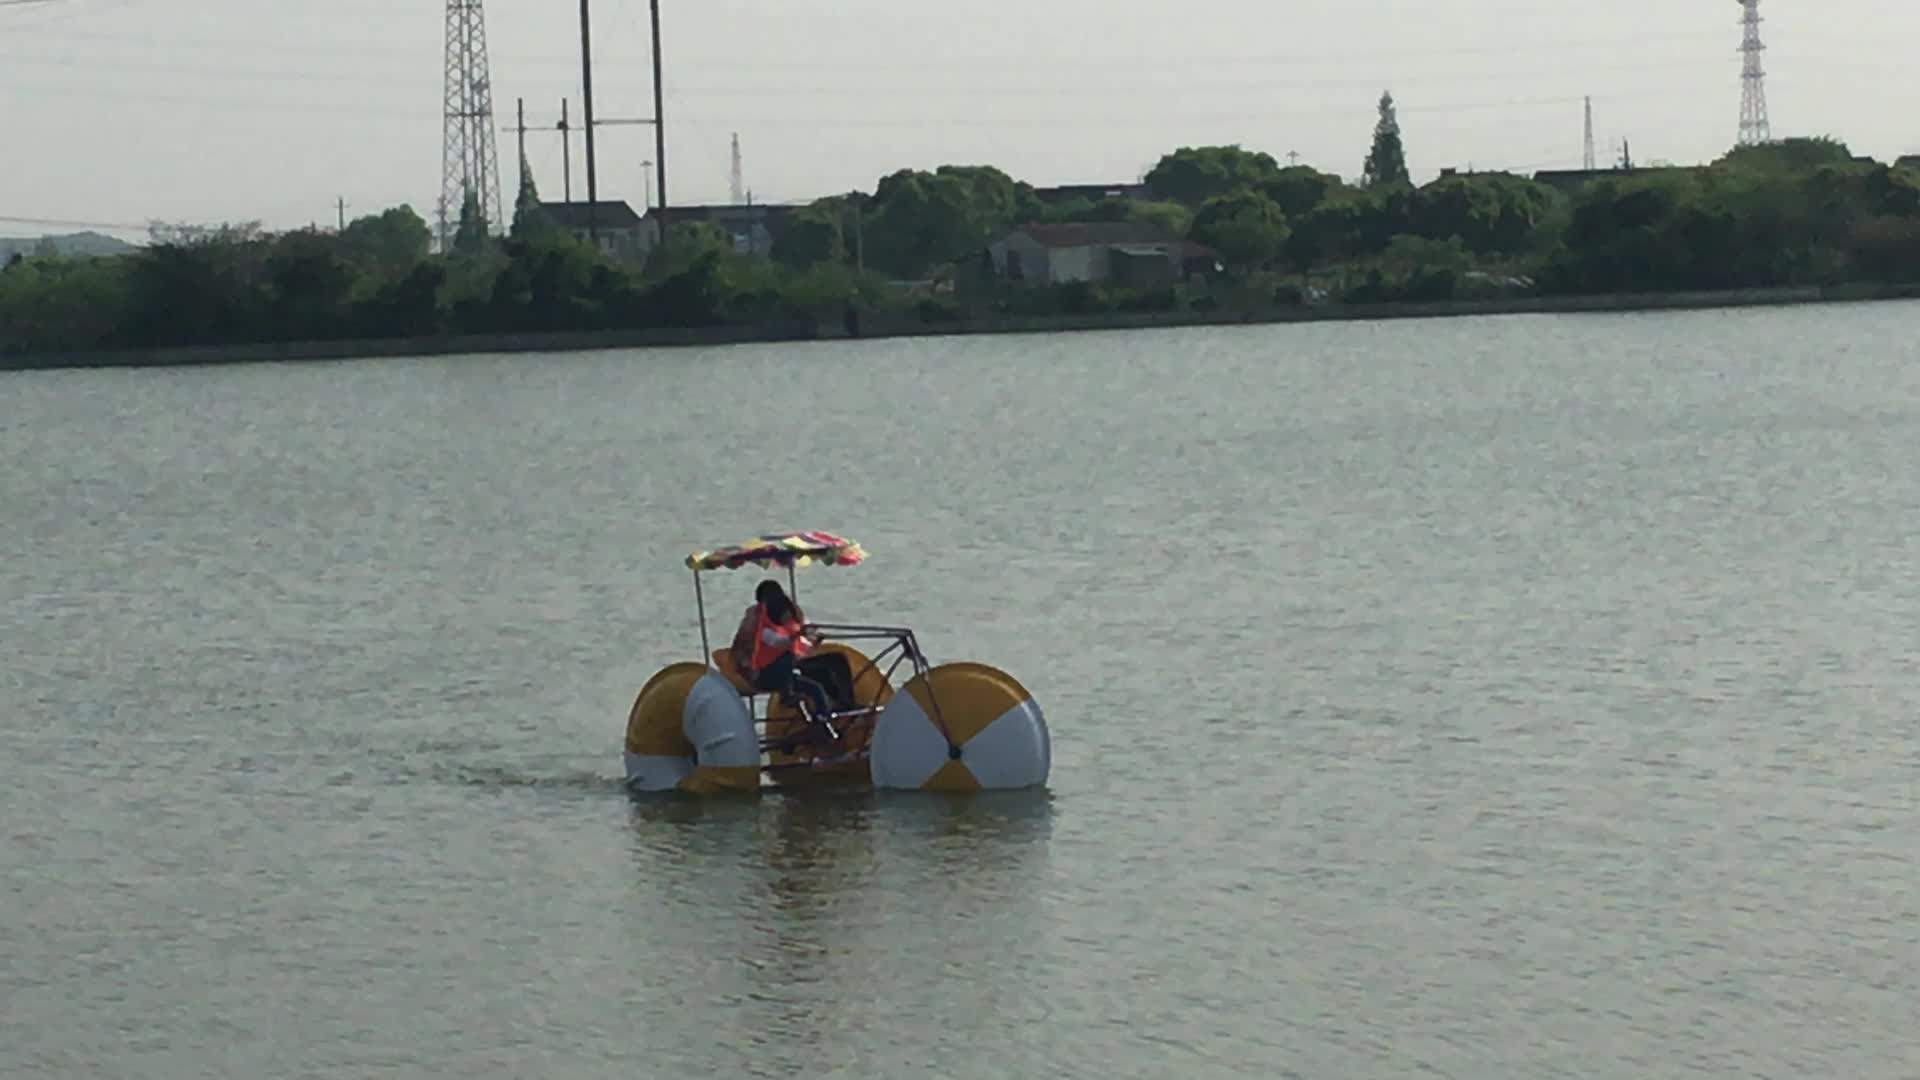 Cheap double person water bike pedal boats for sale